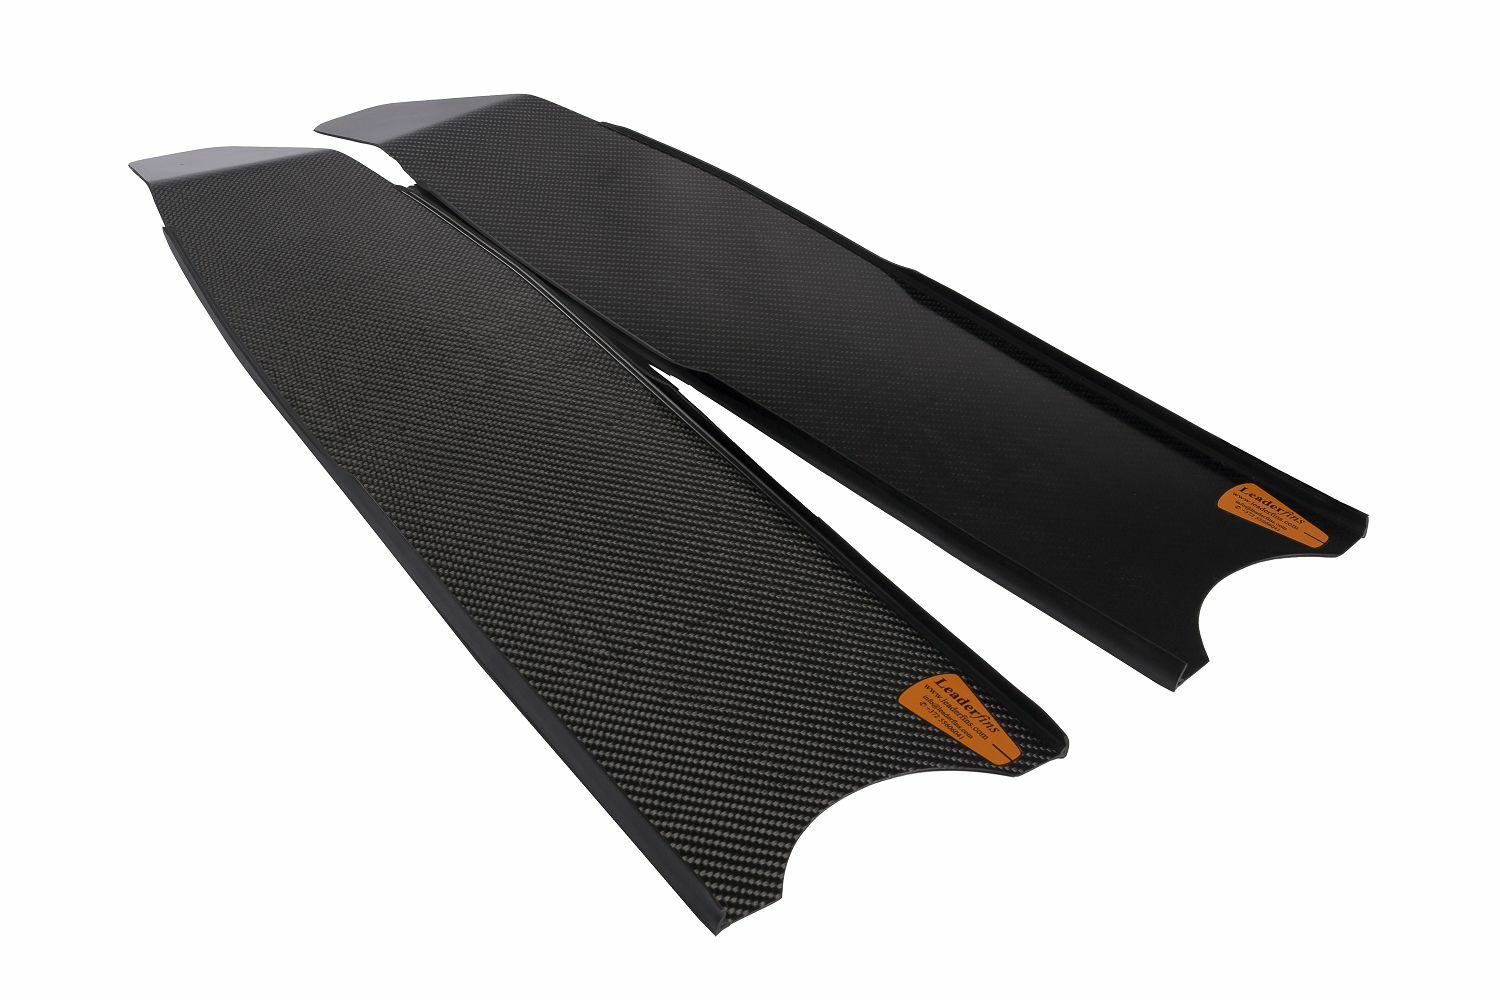 Leaderfins Carbon Fiber Freediving and Spearfishing Stereoblades